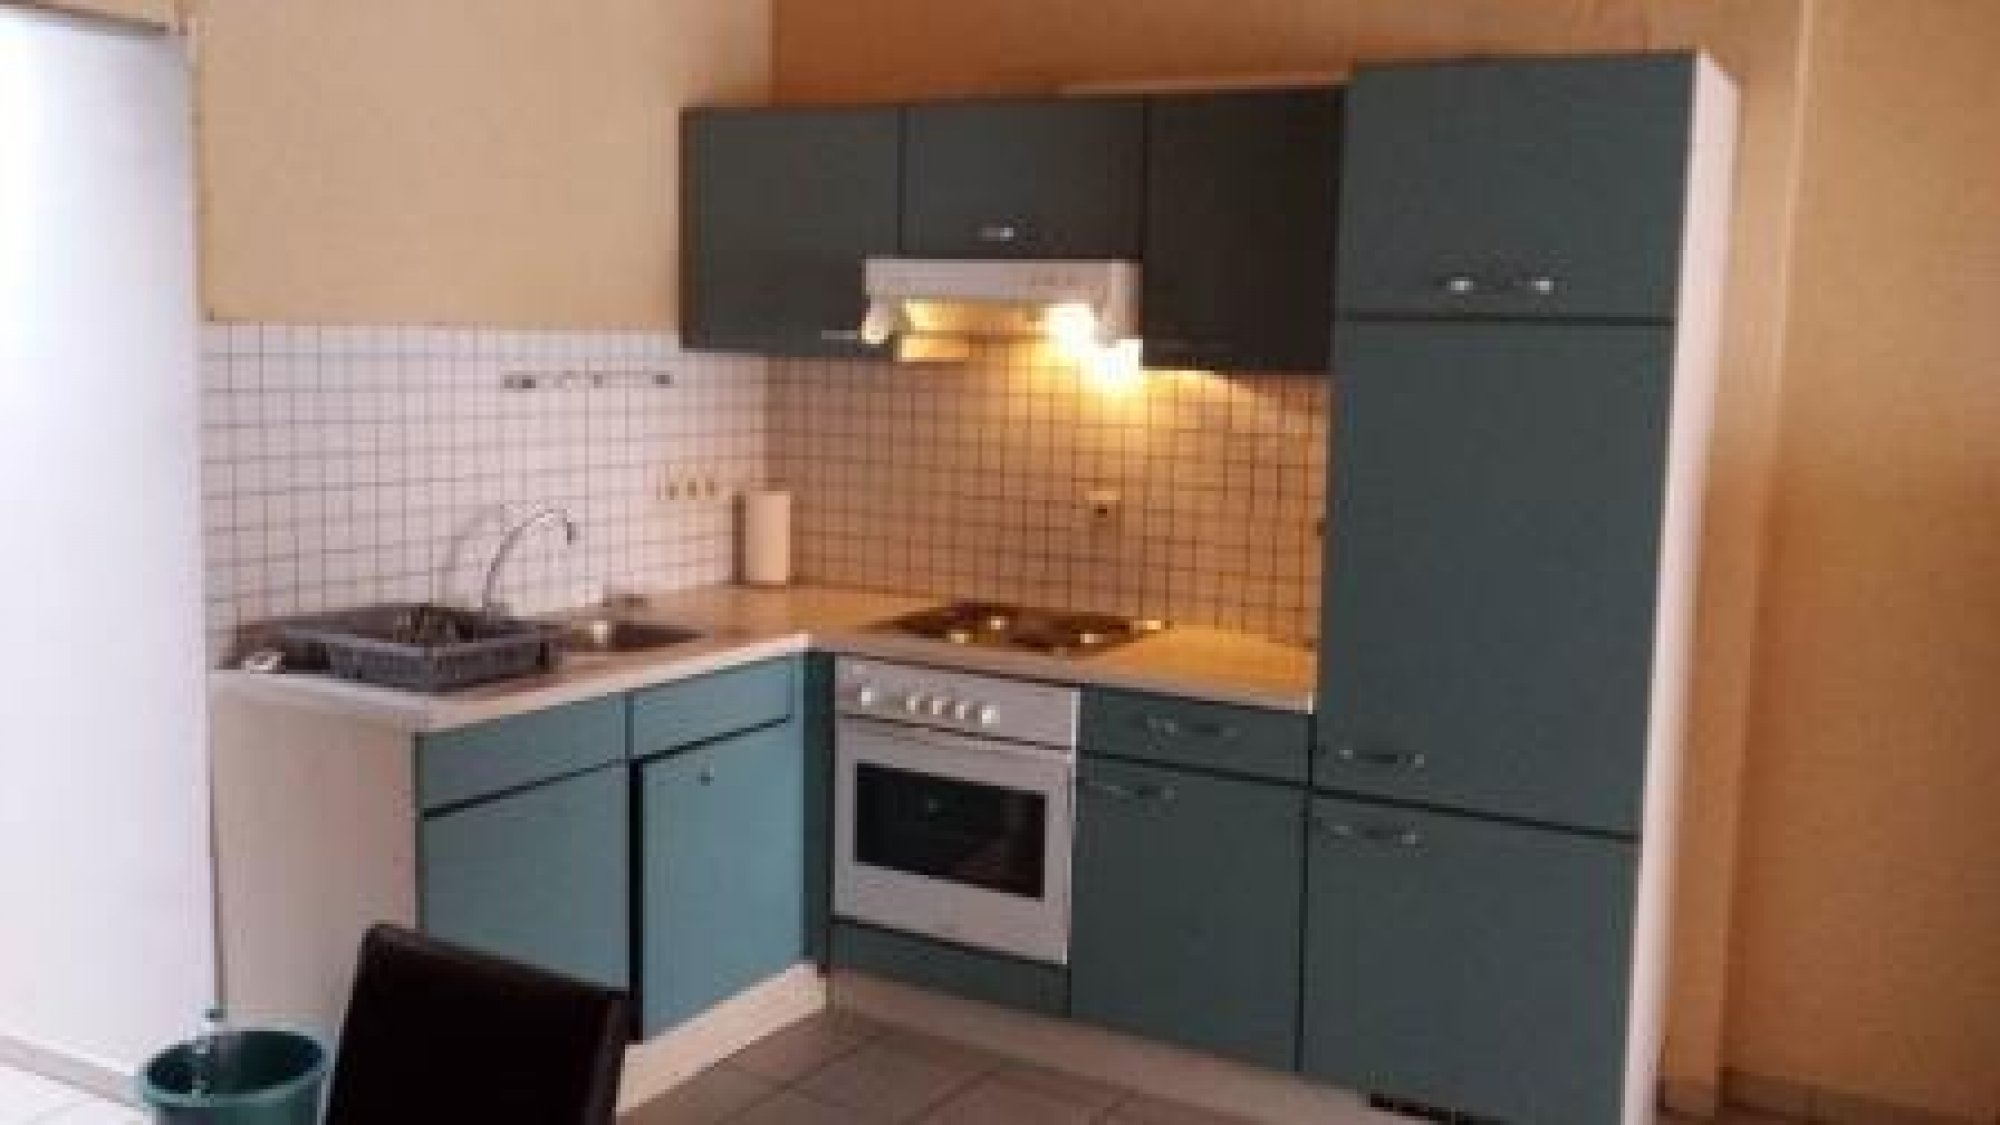 KN 2222 appartement